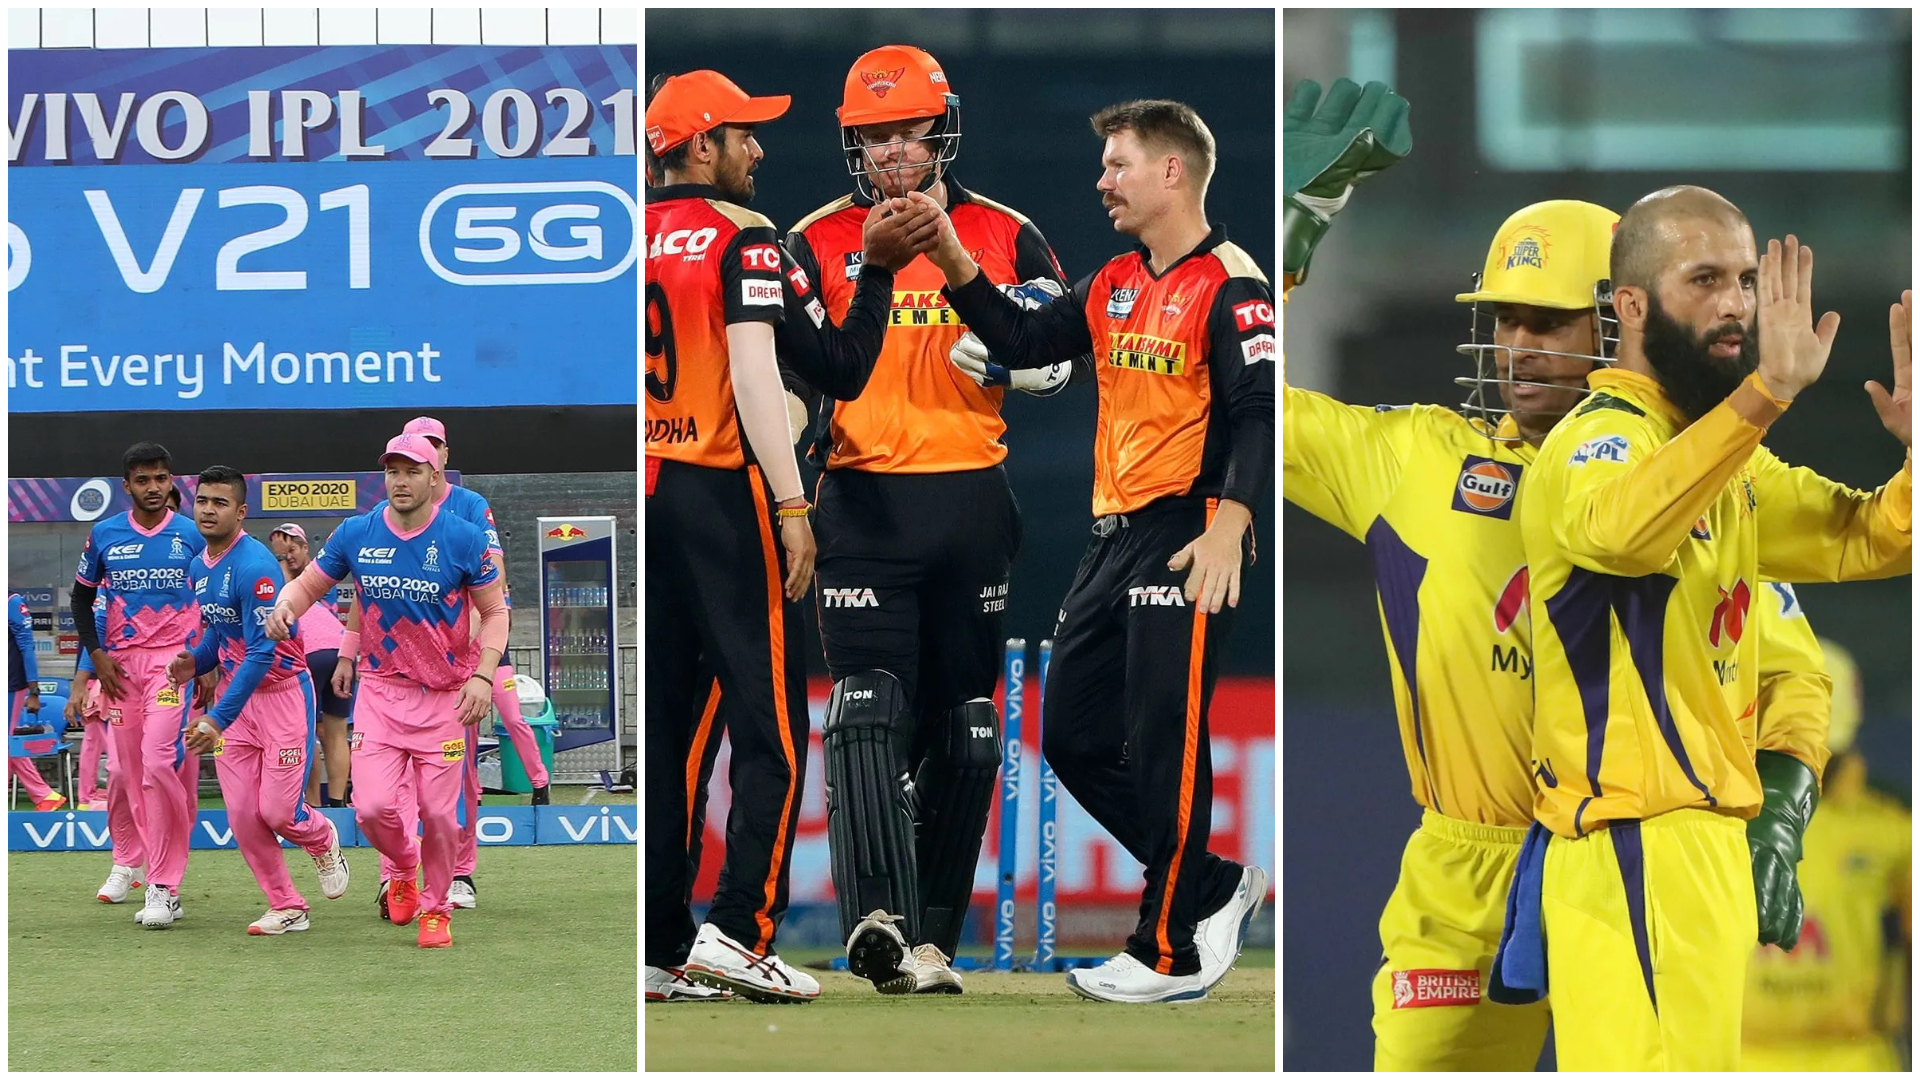 RR, SRH and CSK will be most impacted teams as the England players pull out of the remaining matches of IPL   BCCI